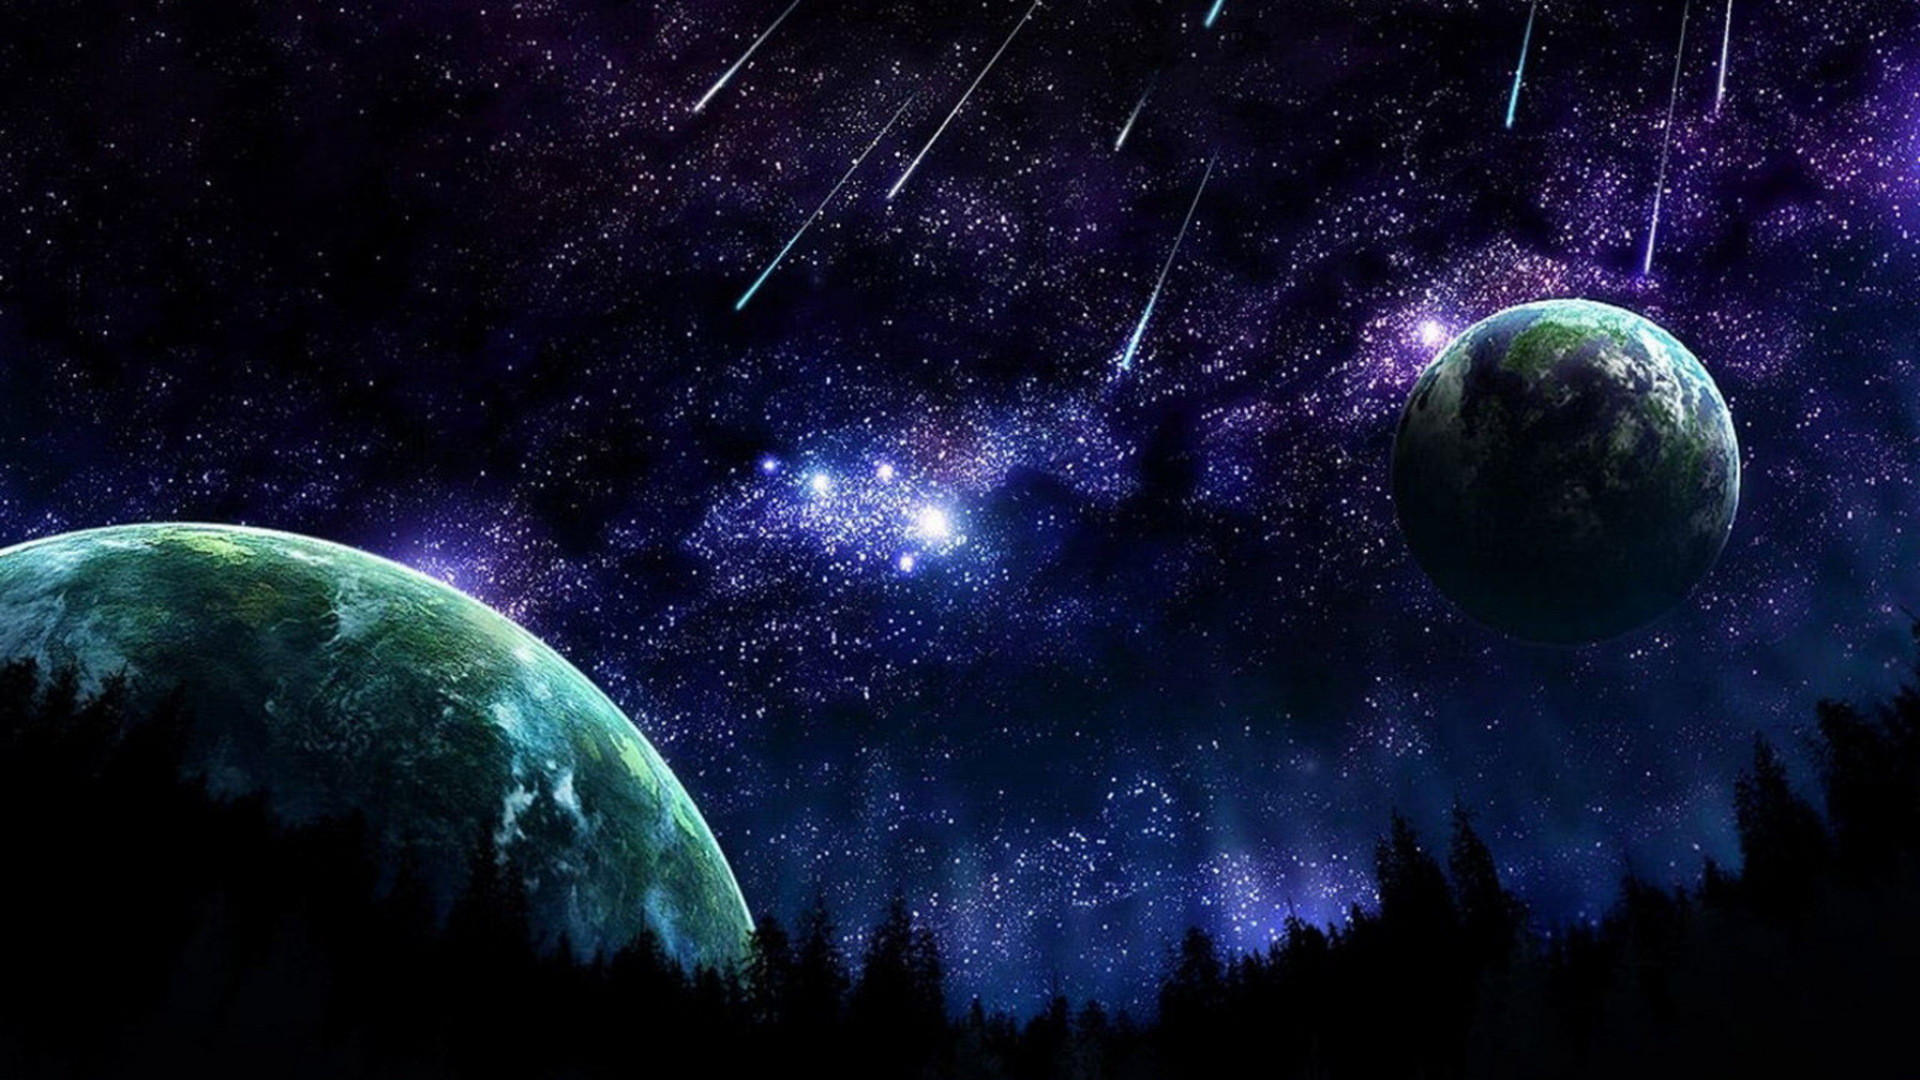 Outer Space Computer Backgrounds   Download HD Wallpapers